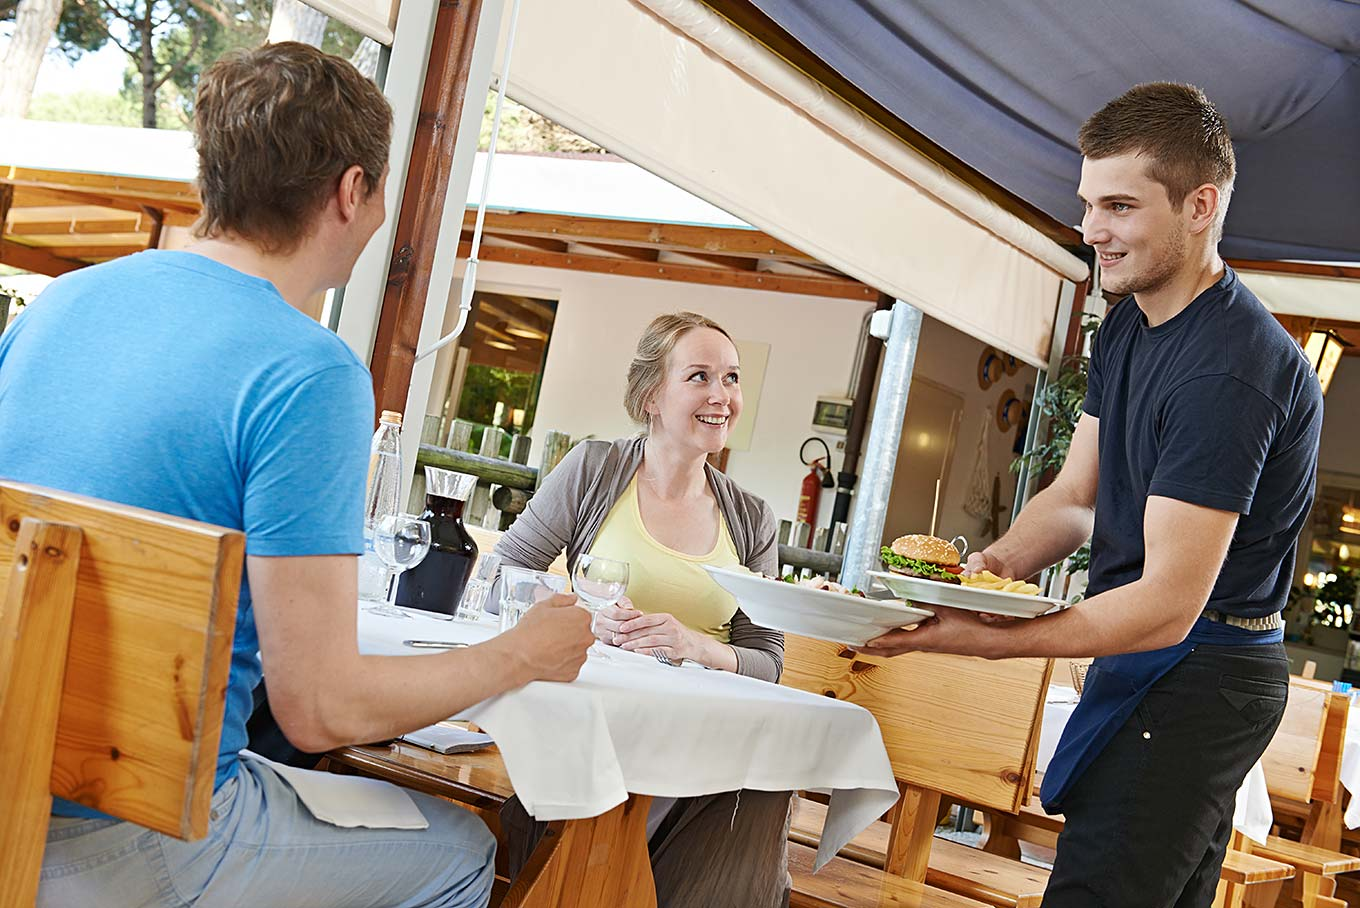 Restaurant Menu Calorie Counts: An Expert Q&A